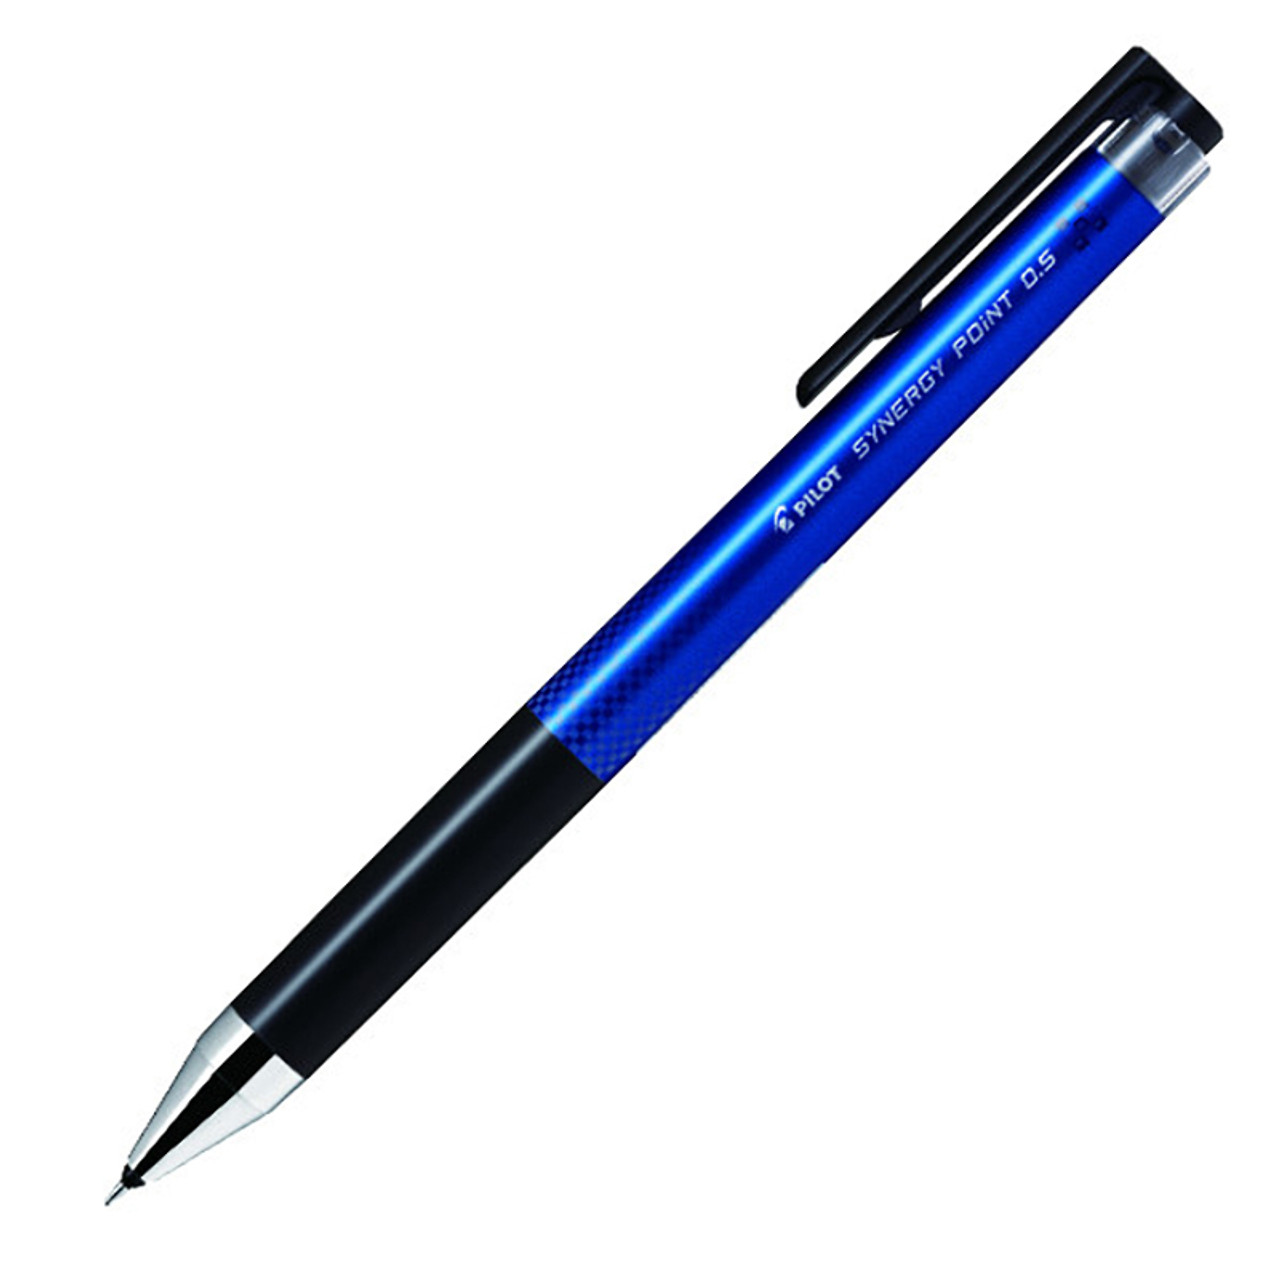 Pilot Synergy Point pens